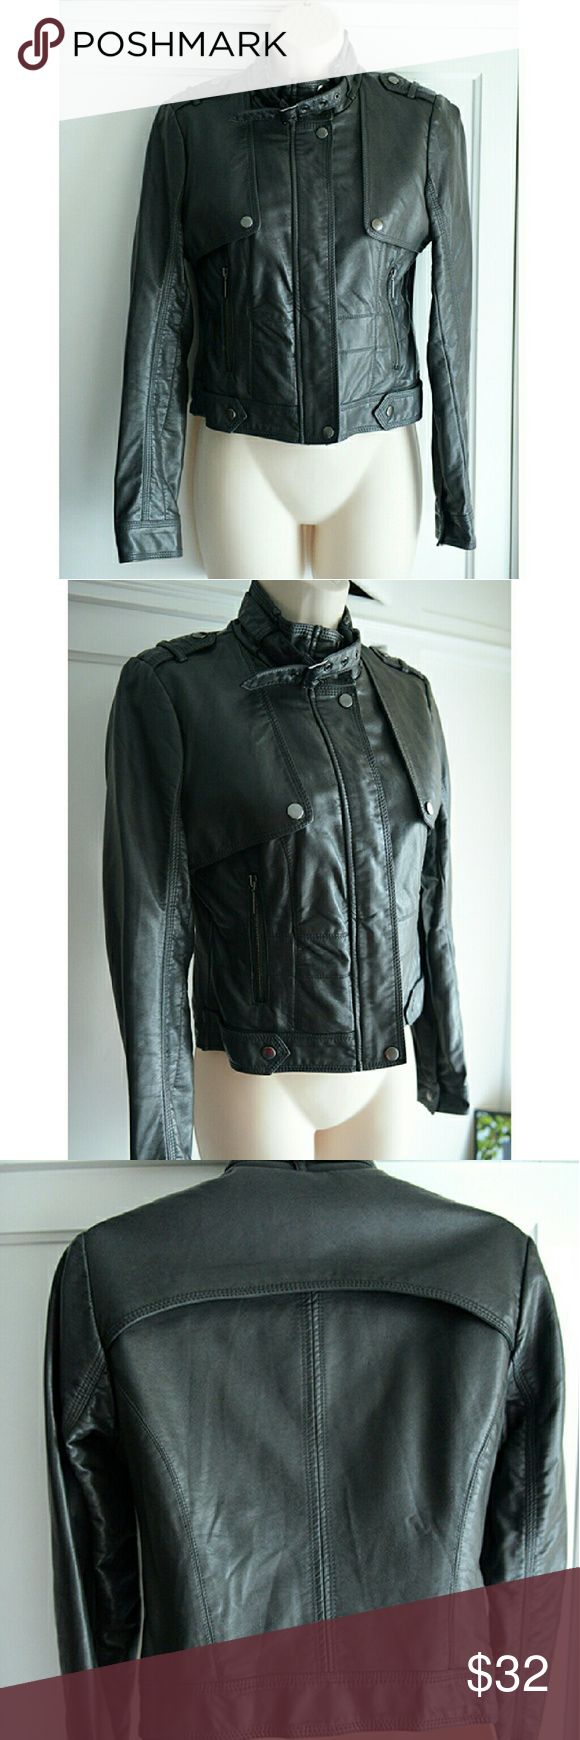 VGUC Charcoal Gray Faux Leather Zara Moto Jacket This is a